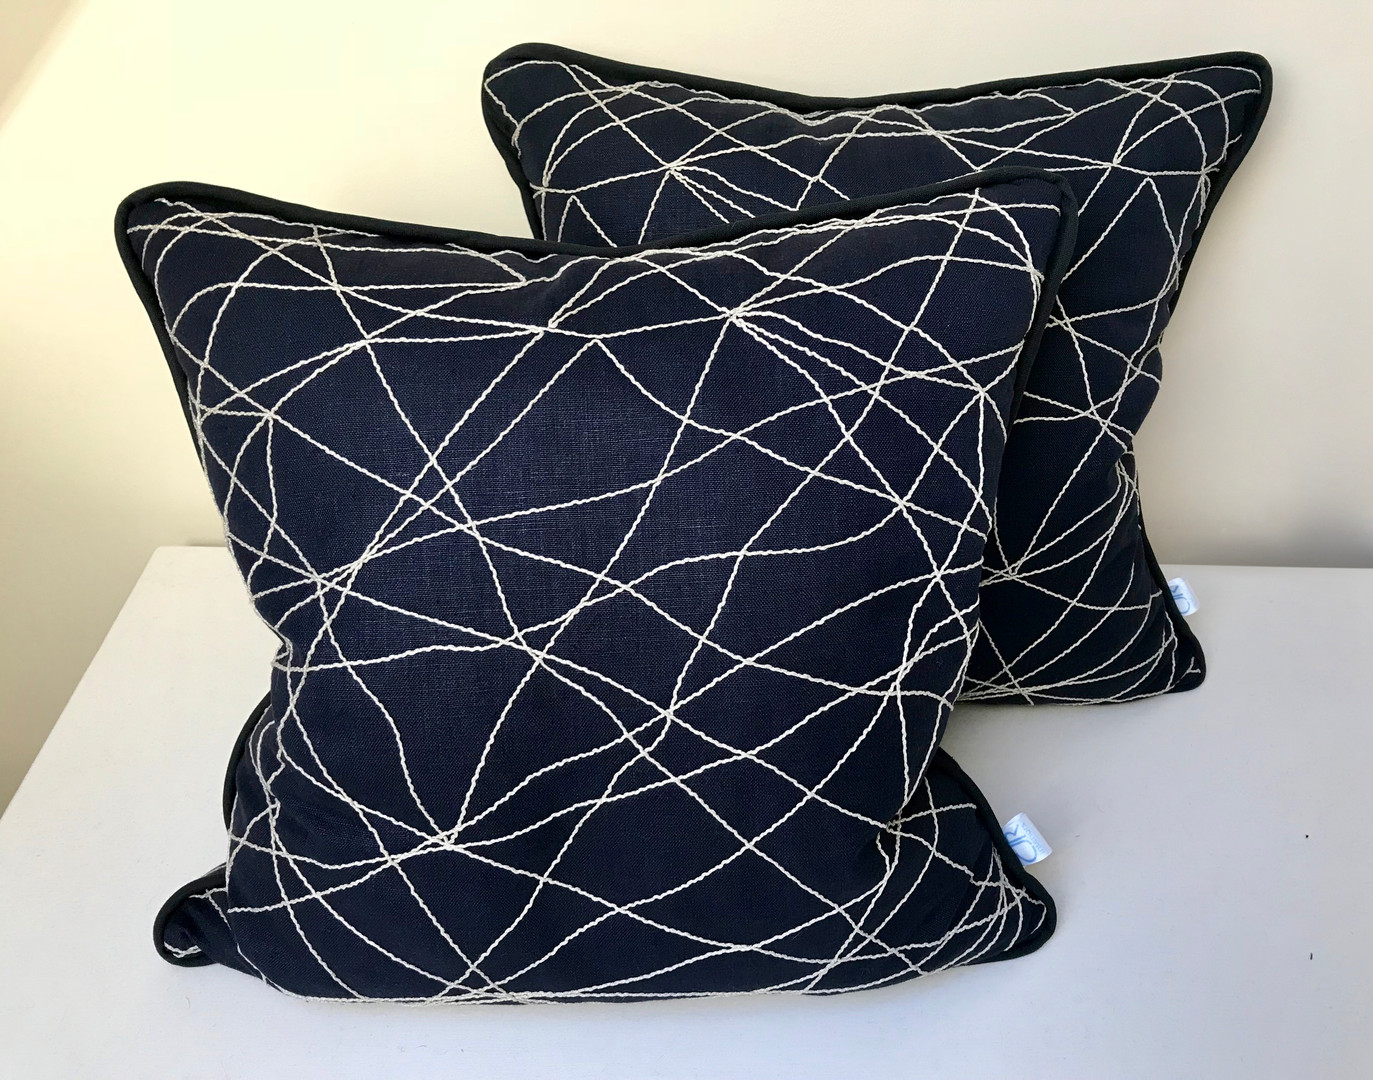 Bespoke Piped Cushions